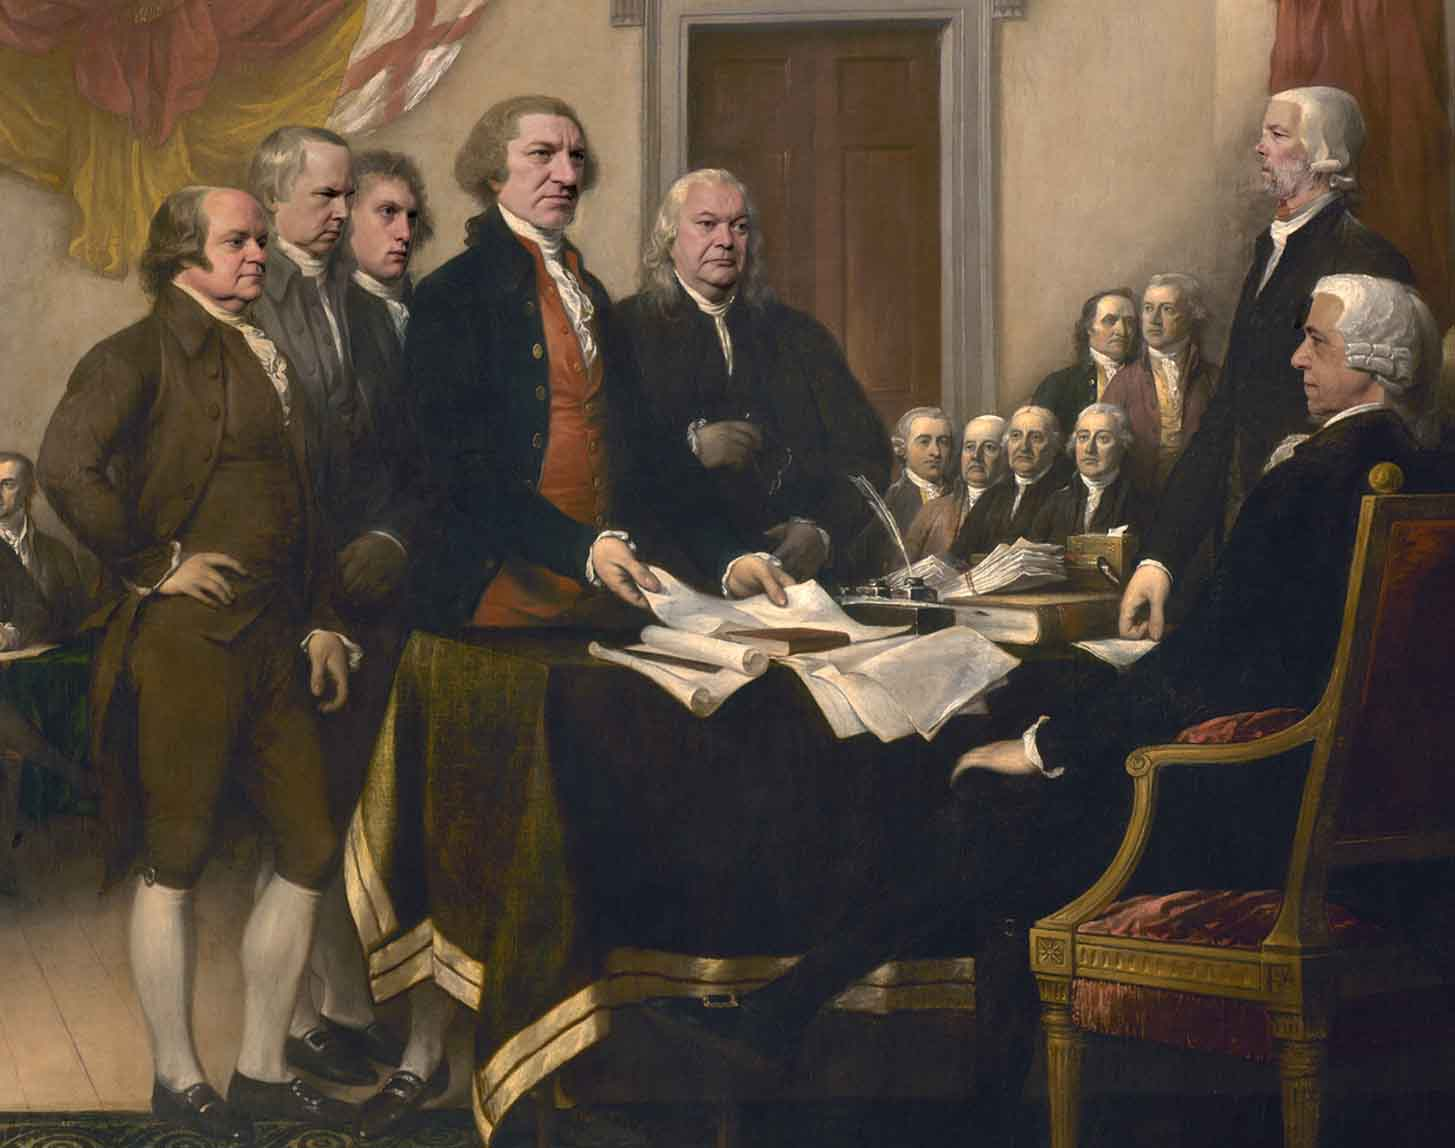 This adaptation of John Turnbull's 'The Signing of the Declaration of Independence' features 1776 cast members (foreground from left to right): Jim Hammill (John Adams), Tim Coleman (Roger Sherman), Greg Totino (John Livingston), Todd Young (Thomas Jefferson), Michael Juzwak (Benjamin Franklin), Andy Weintraub (Charles Thomson), Peter S. Pius (John Hancock).  Photo/adaption credit: Ken Dreyfack